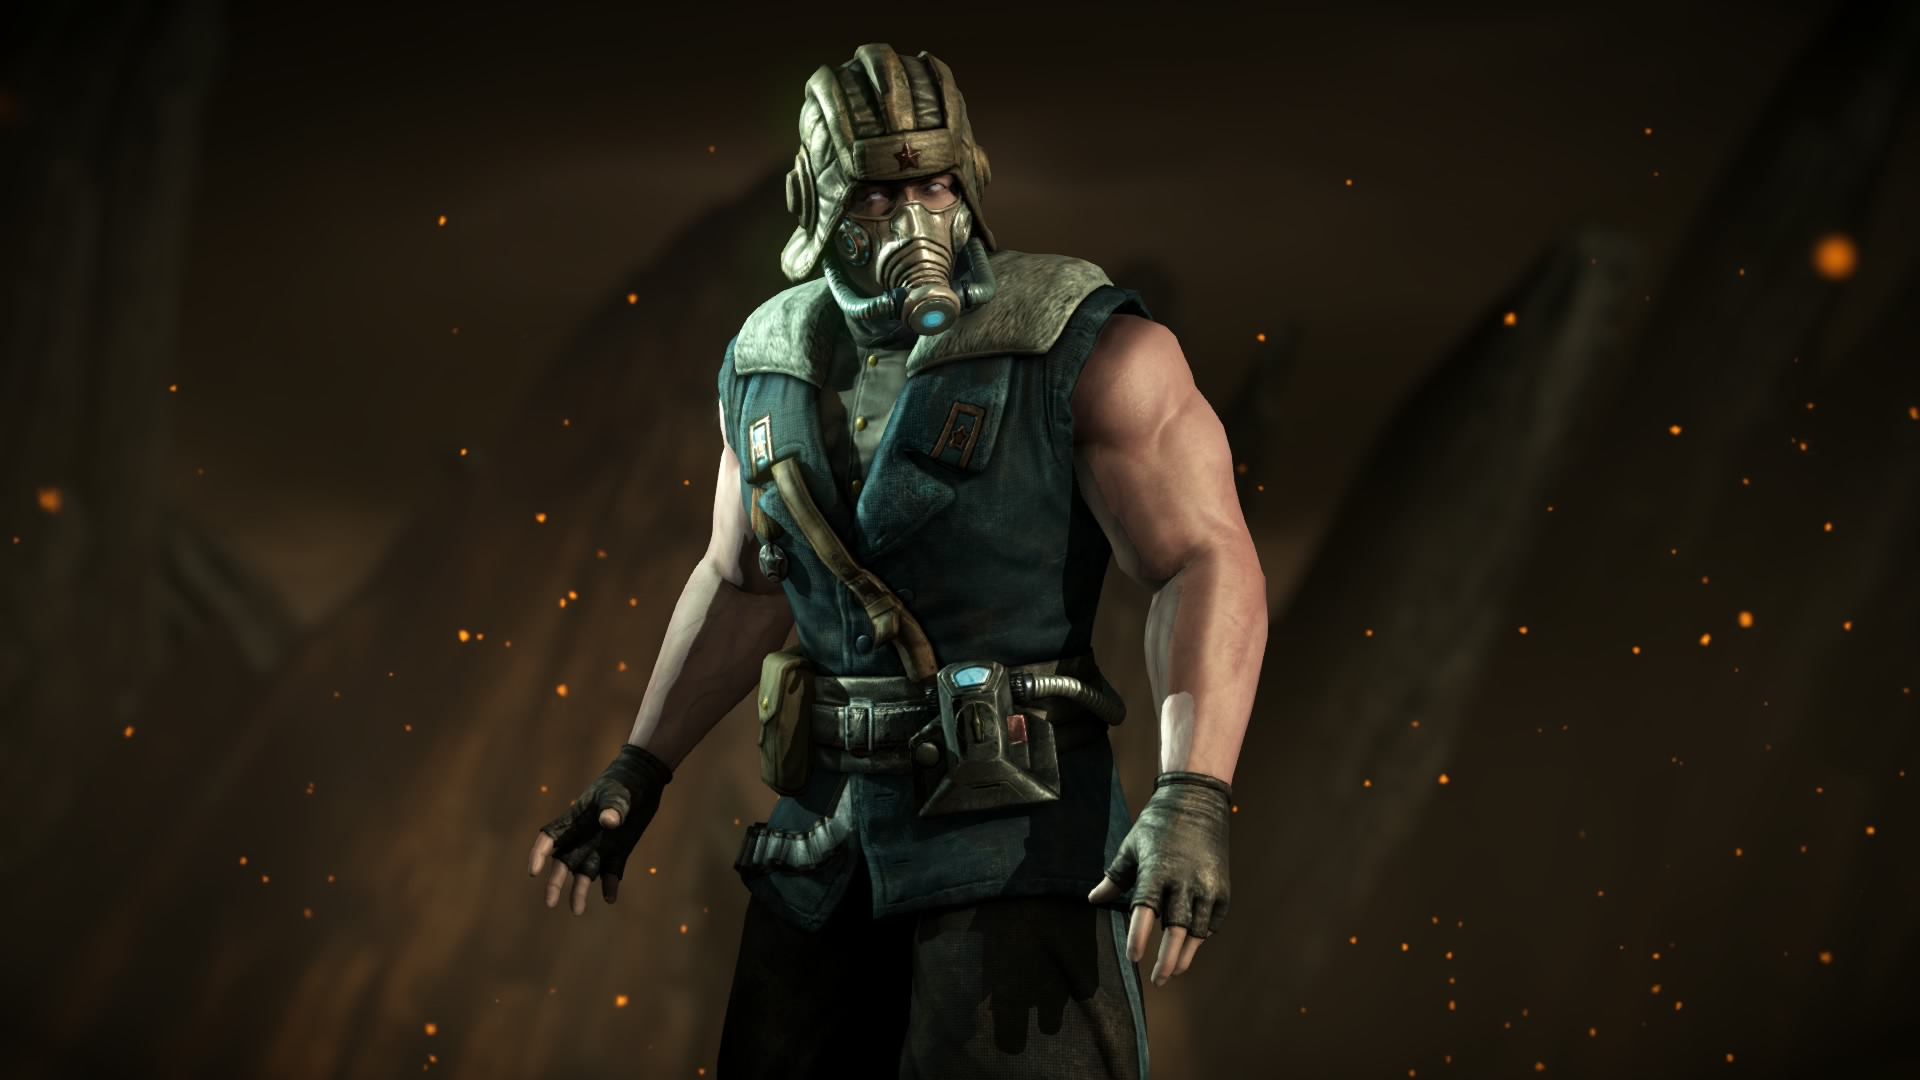 Mortal Kombat X Review: 5 Things I Love And Hate About